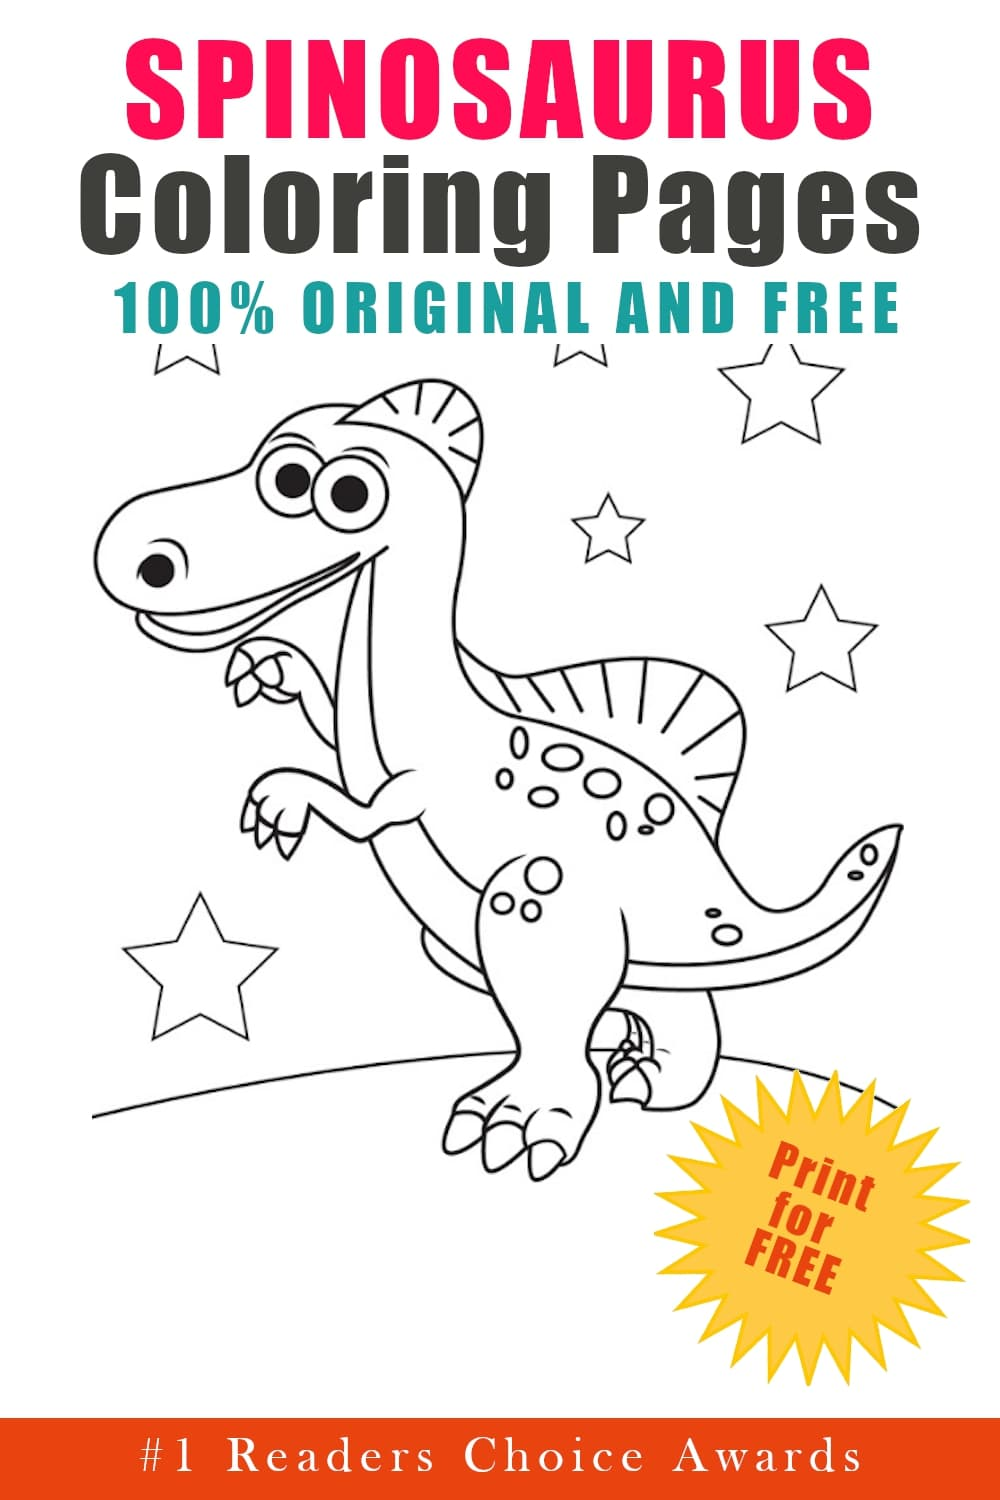 original and free spinosaurus coloring pages